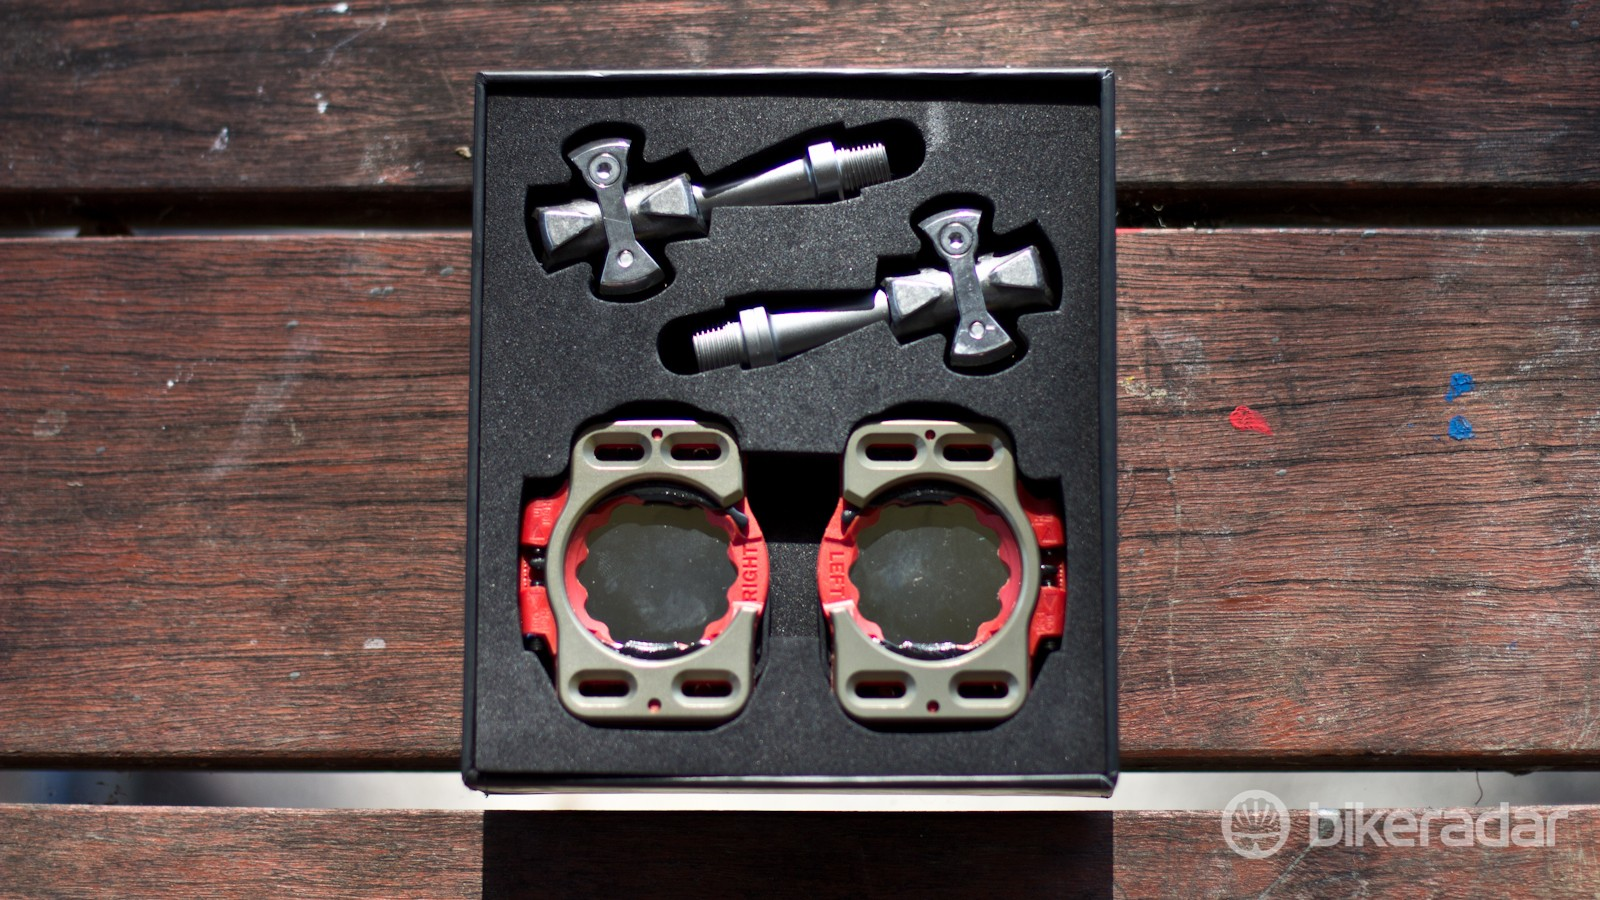 The 2015 Pave pedals come with Speedplay's new V.2. cleat